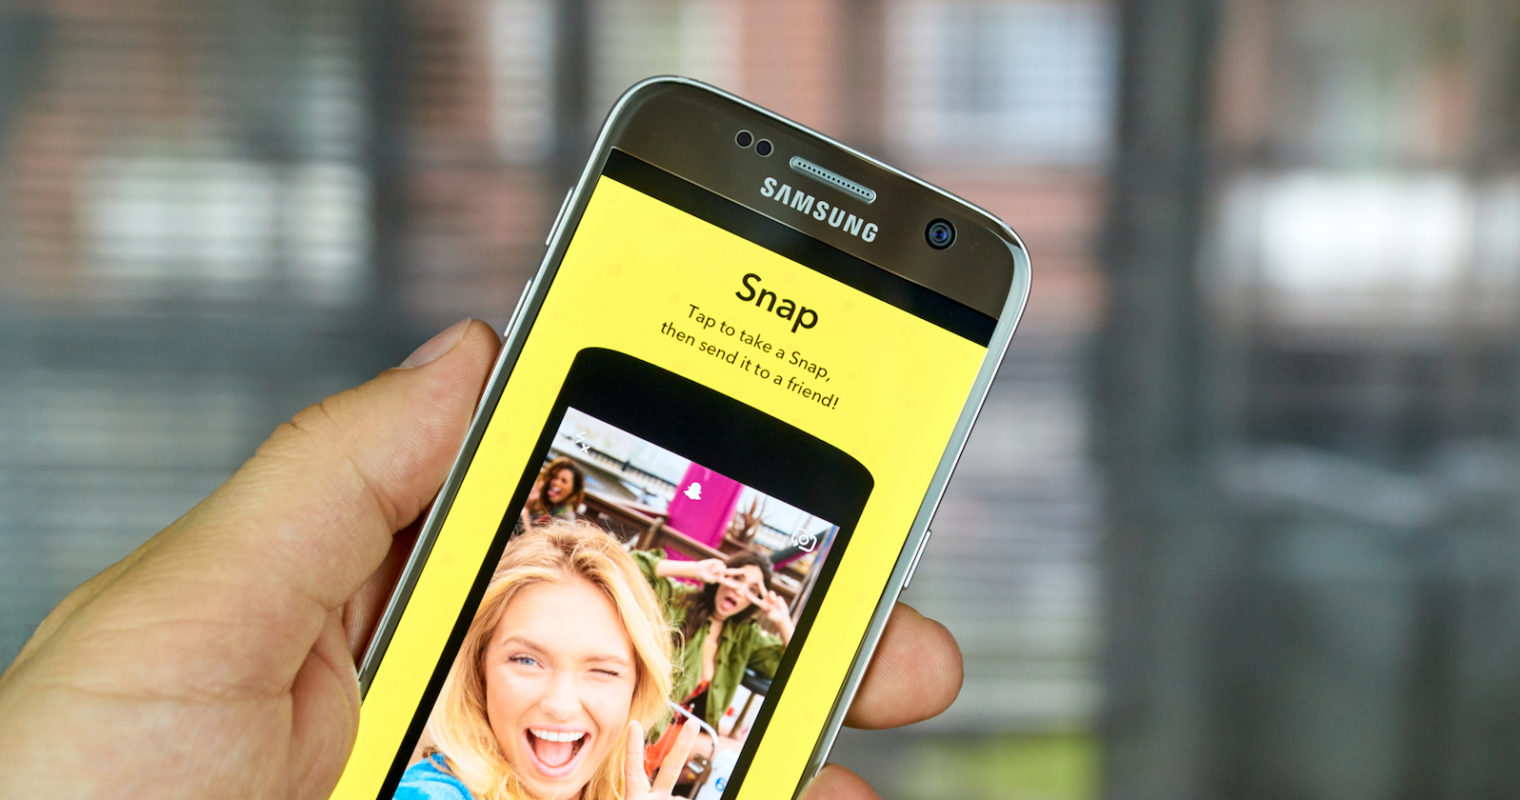 6 Surprising Stats from the Snapchat IPO Filing